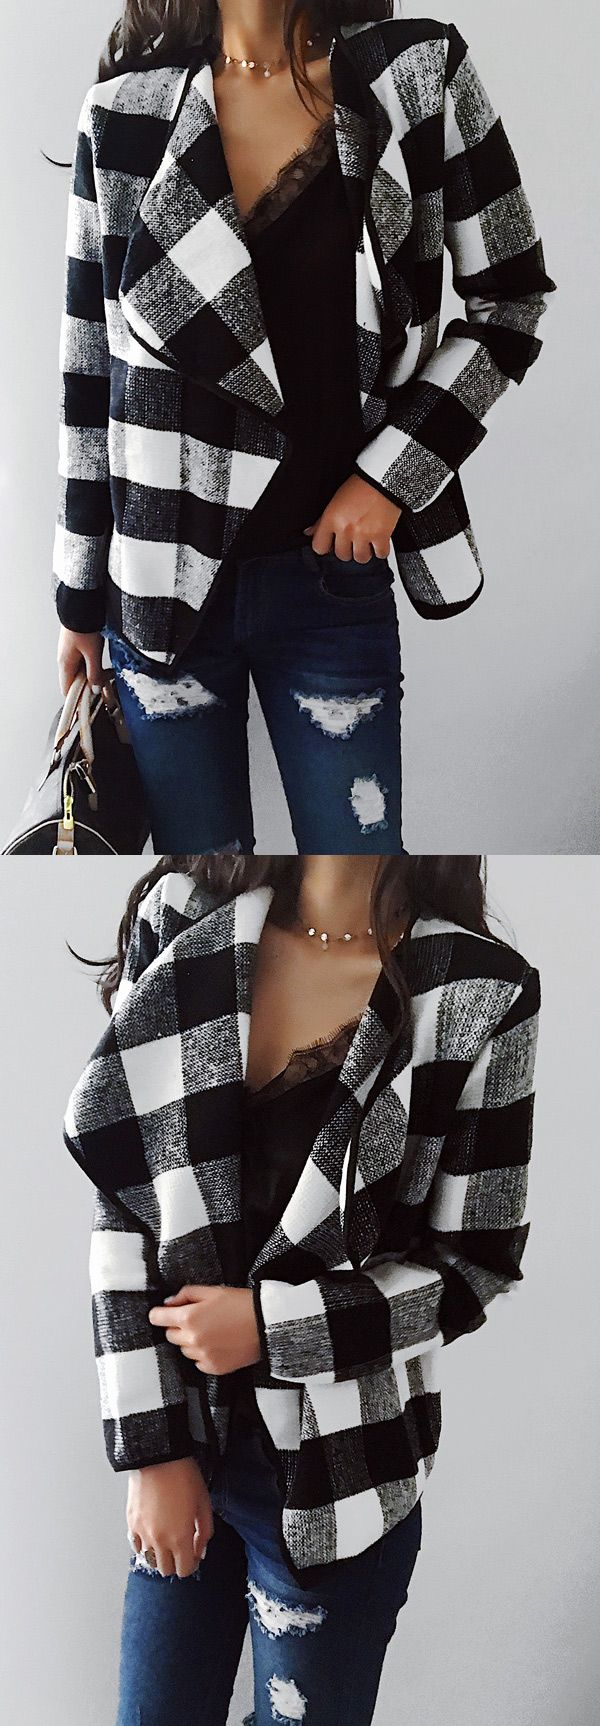 $33.99! Chicnico Fashion Open Collar Batwing Sleeve Gingham Oversize Cardigan ready for Fall fashion! Find fashionable outfits for the new